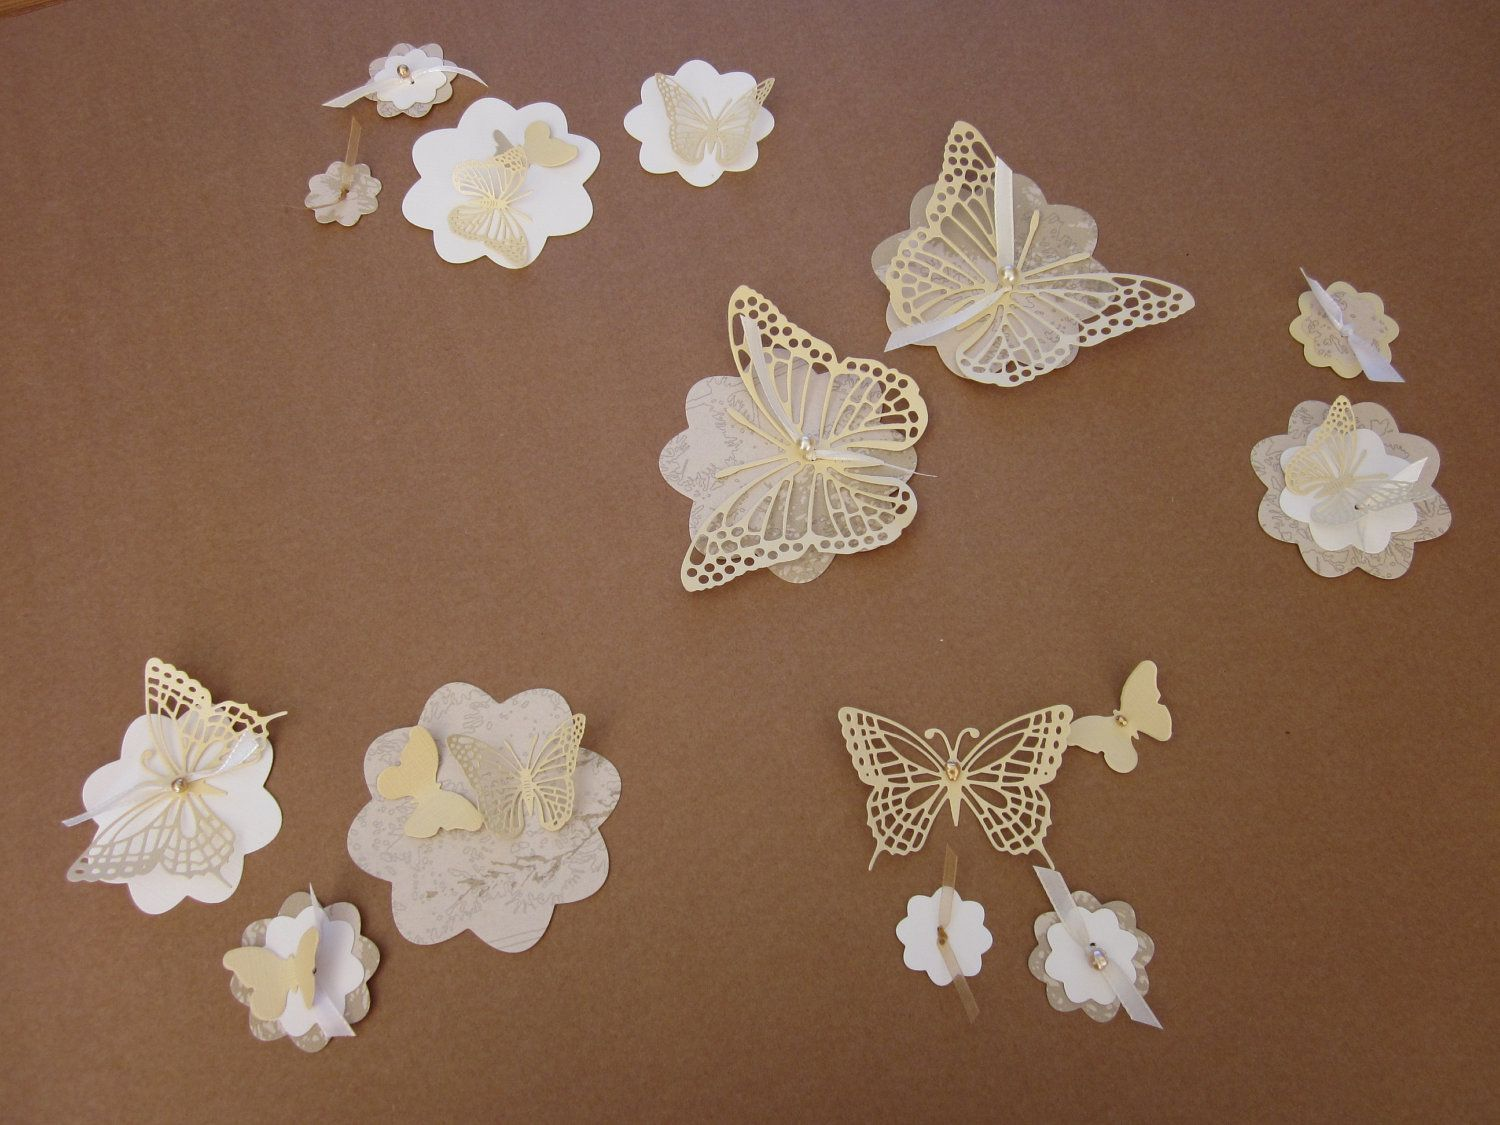 Butterflies and flowers!